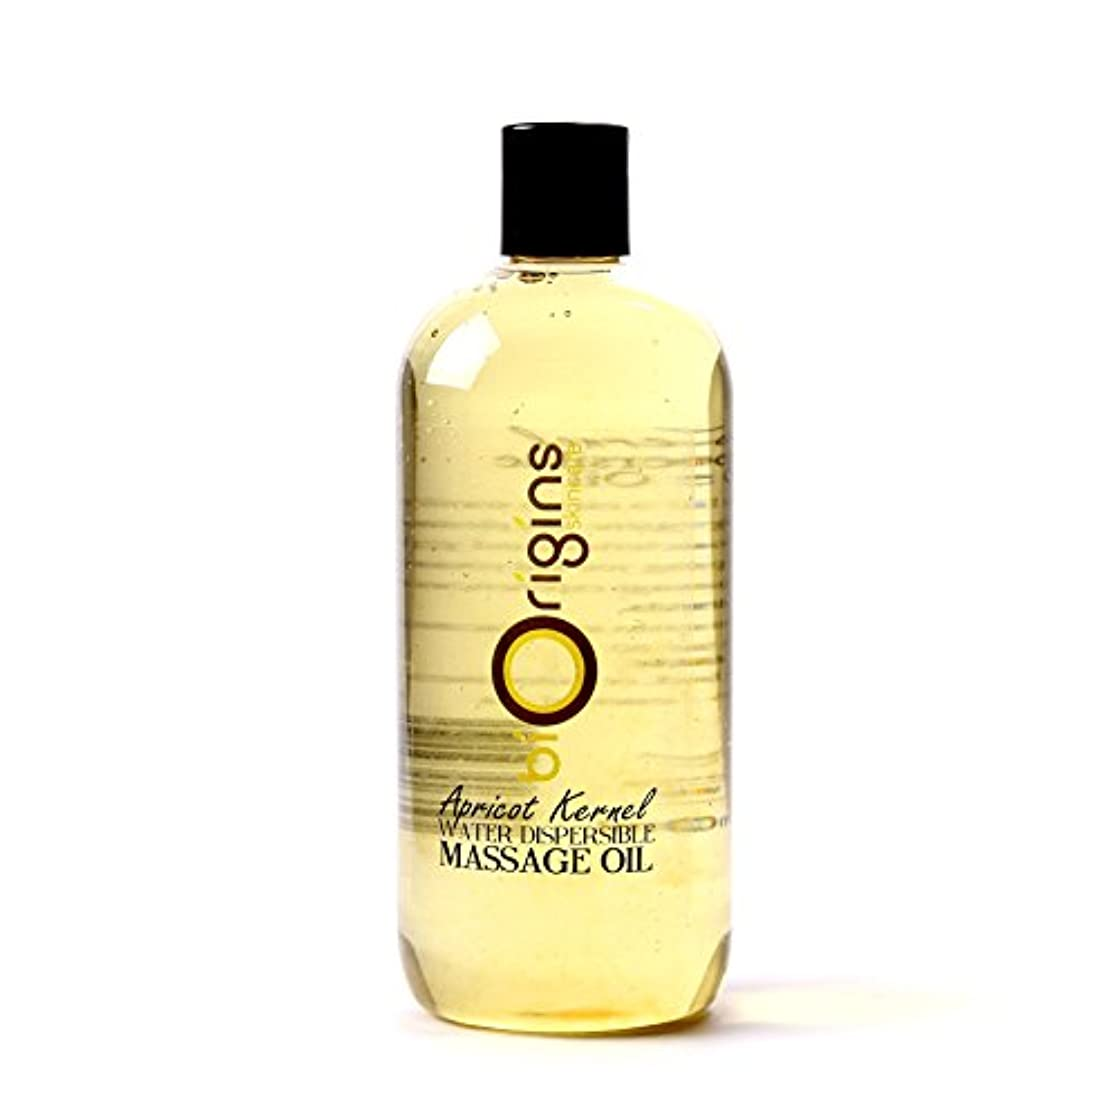 Apricot Kernel Water Dispersible Massage Oil - 500ml - 100% Pure